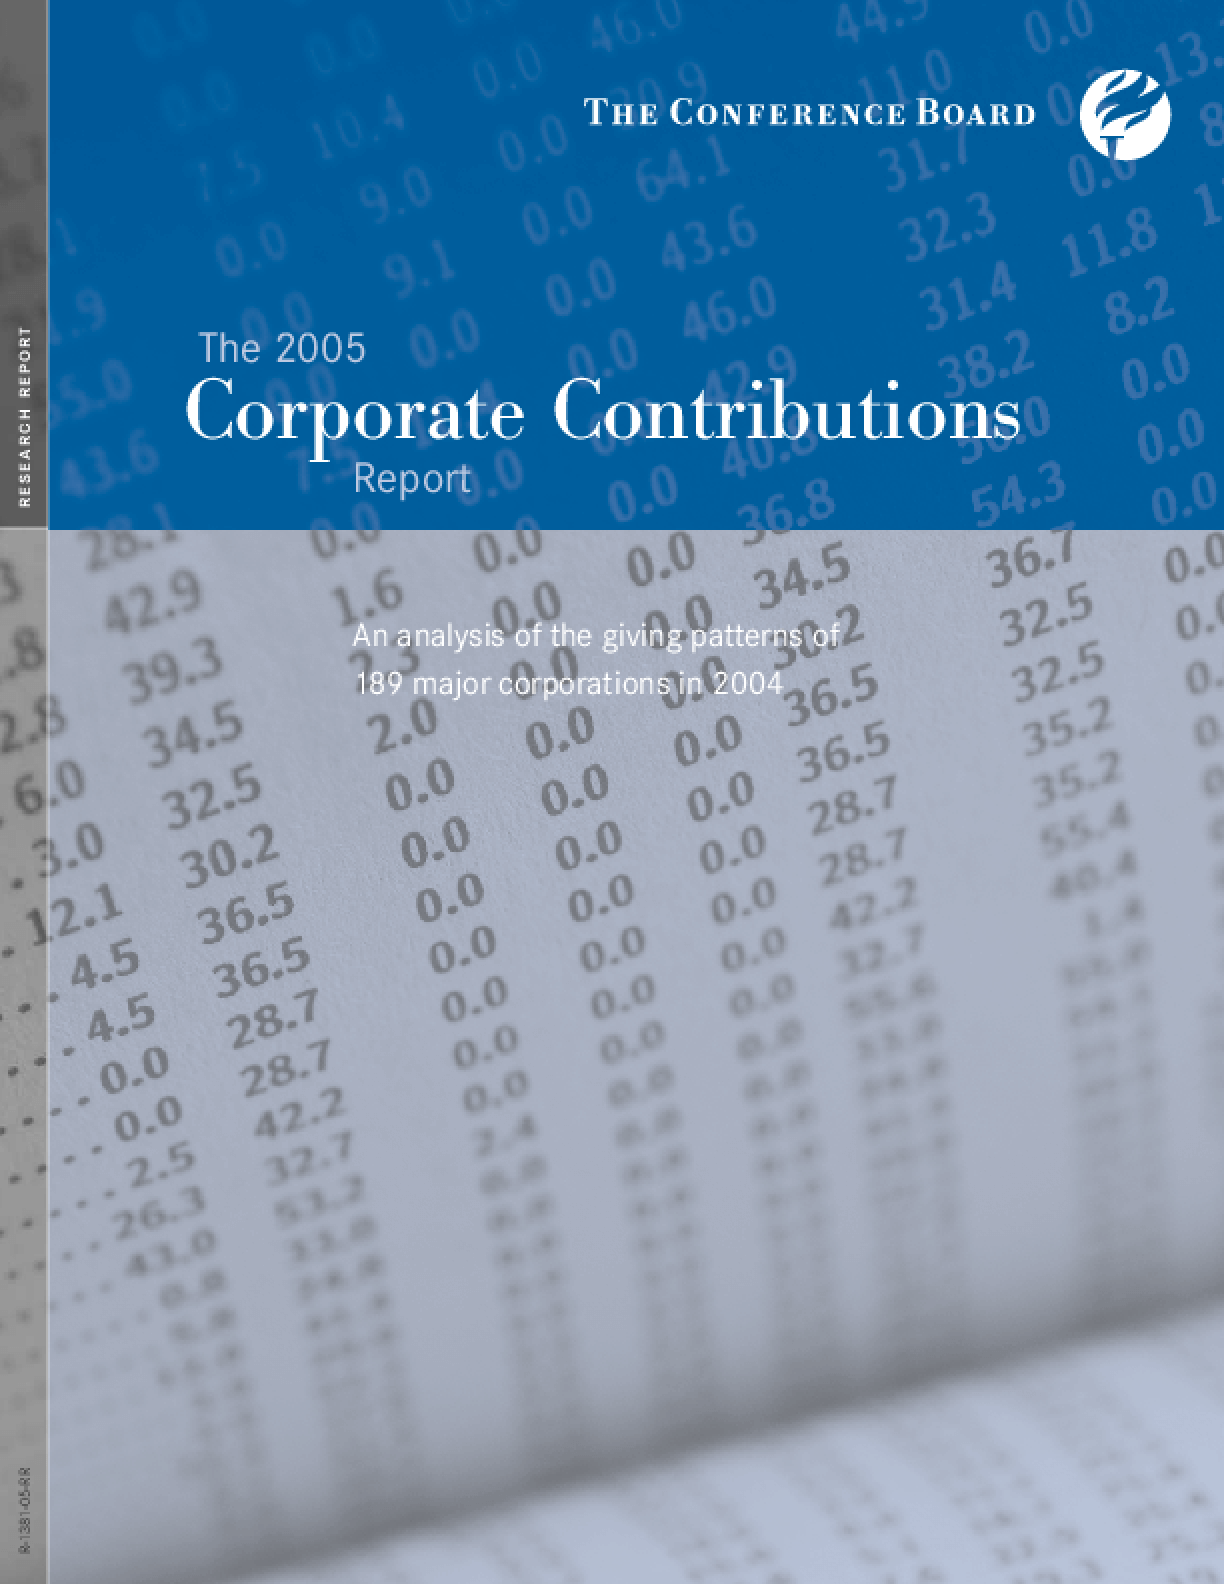 The 2005 Corporate Contributions Report: an Analysis of the Giving Patterns of 189 Major Corporations in 2004